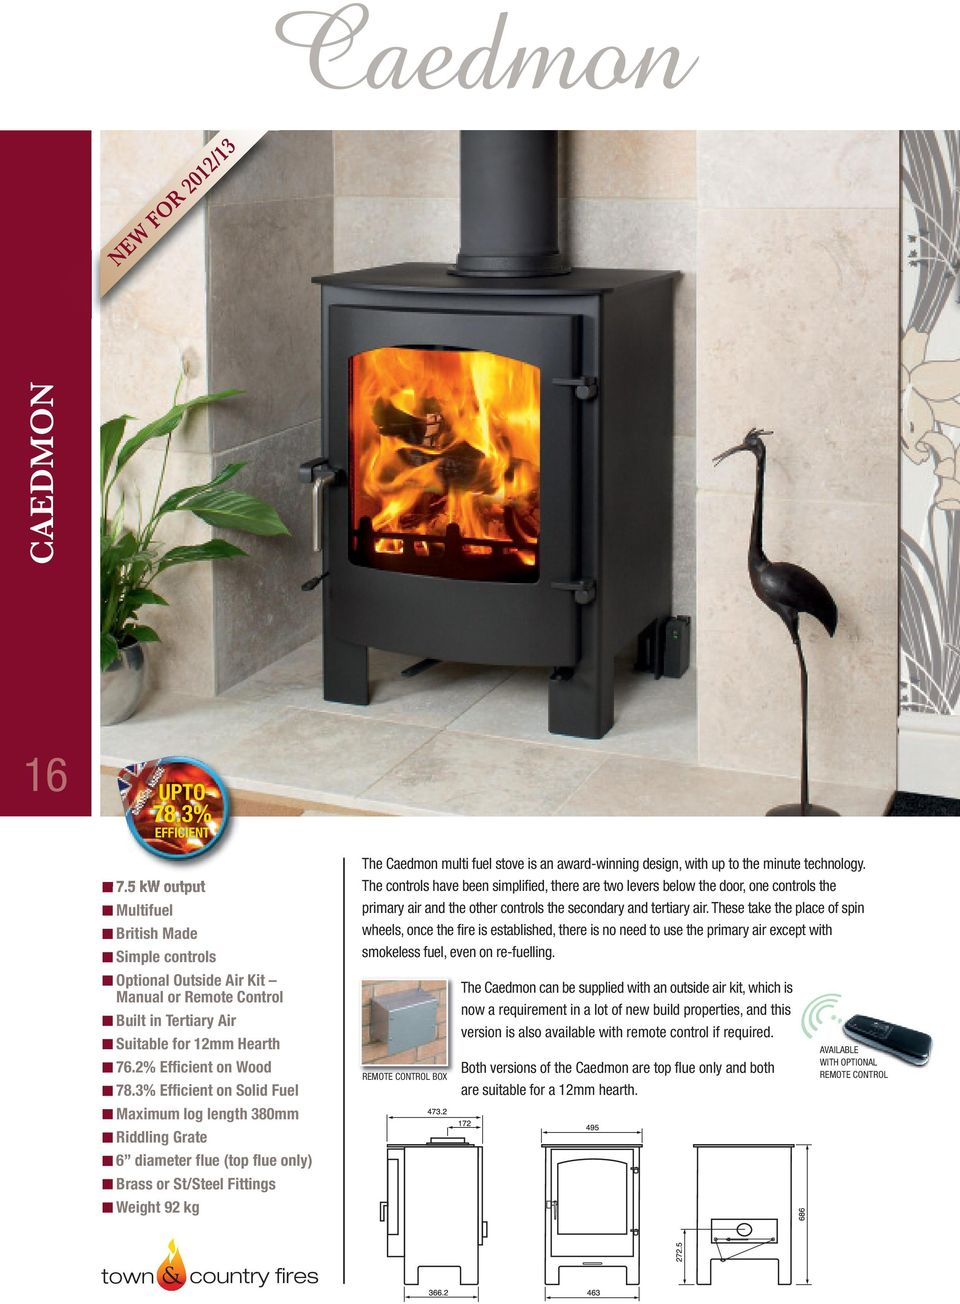 Efficient Stoves That Won T Cost The Earth Pdf Rocket Stove Diagram Oven Fireplace Earthen Pint Technology Controls Have Been Simplified There Are Two Levers Below Door